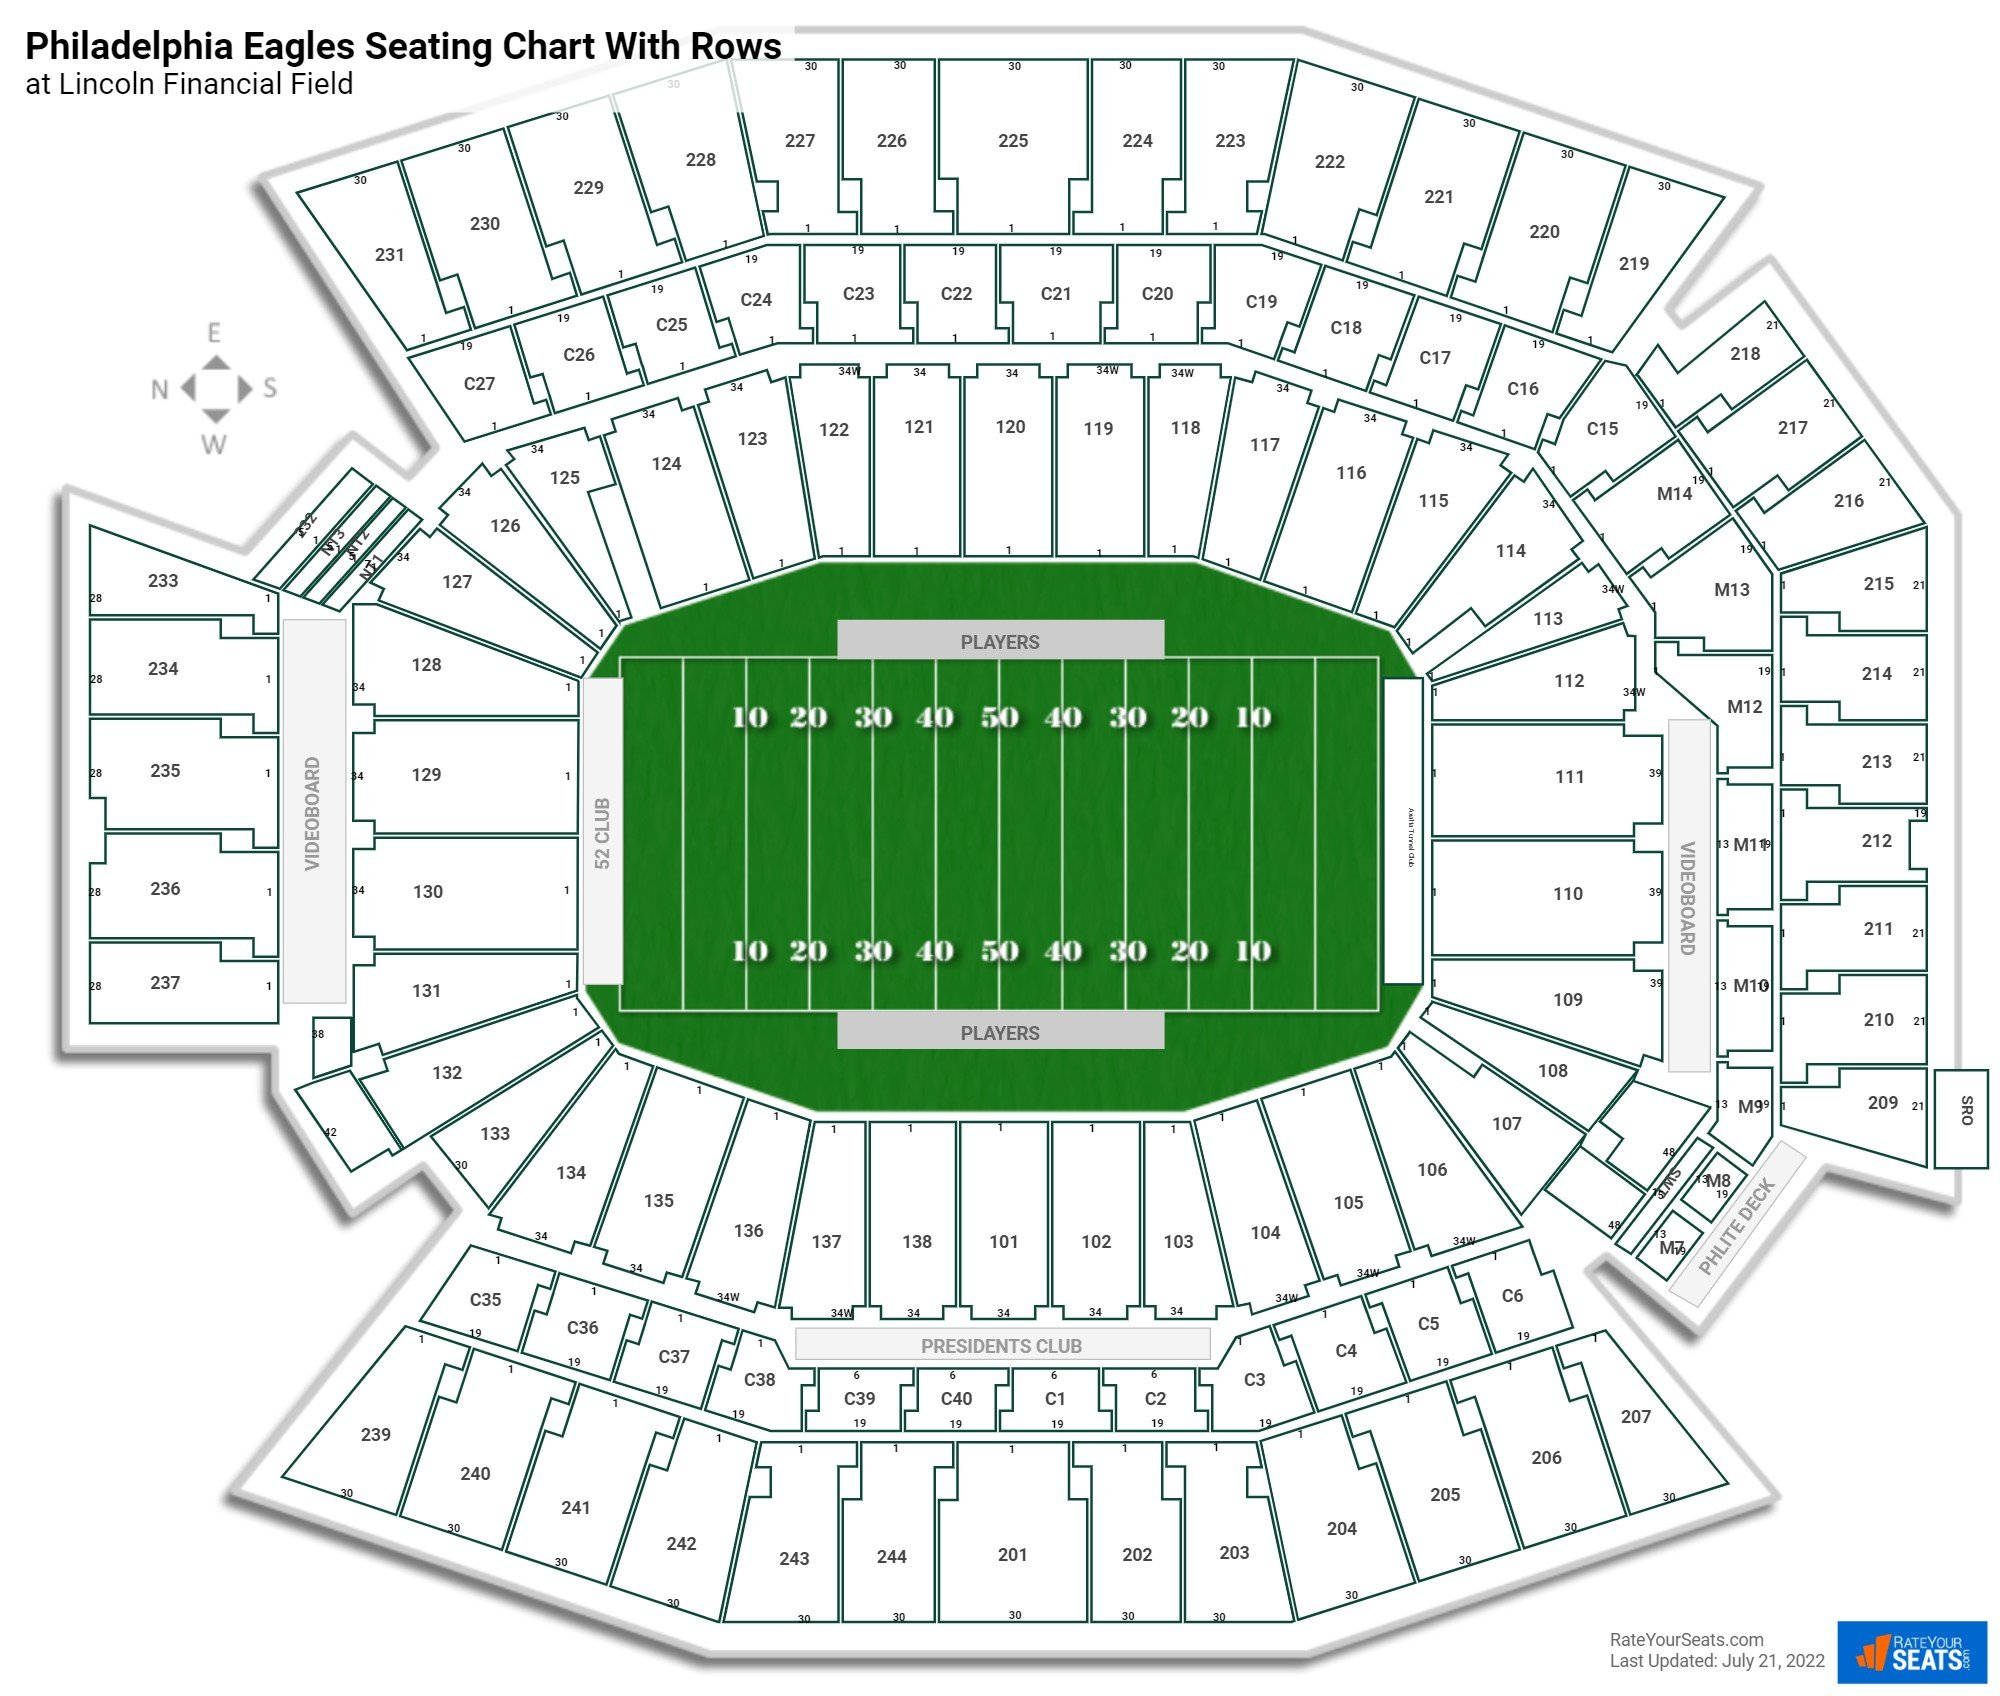 Lincoln Financial Field seating chart with rows football